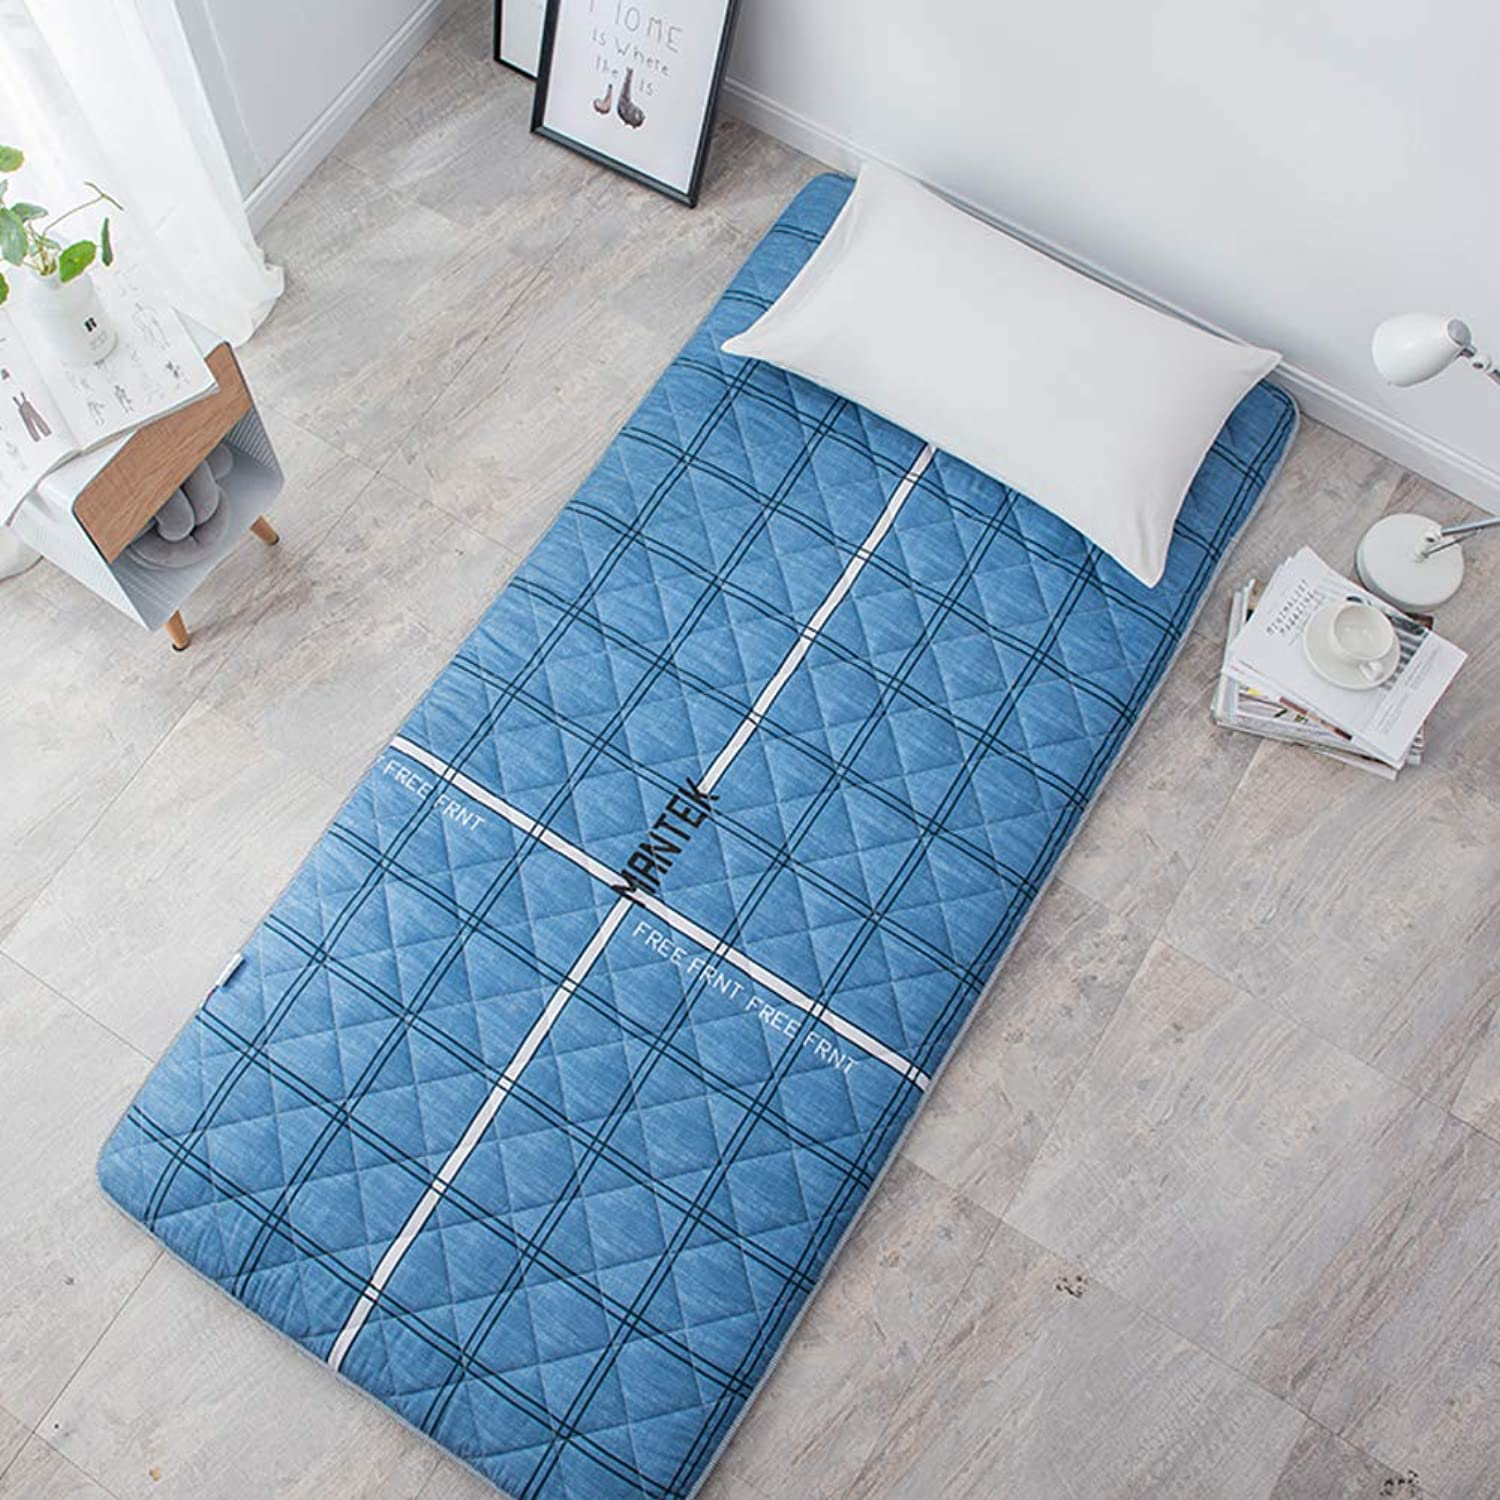 Student Dormitory Tatami Thicken Mattress,Japanese Mattress Single Double Family Foldable Four Seasons Mattress-k 90x200cm(35x79inch)